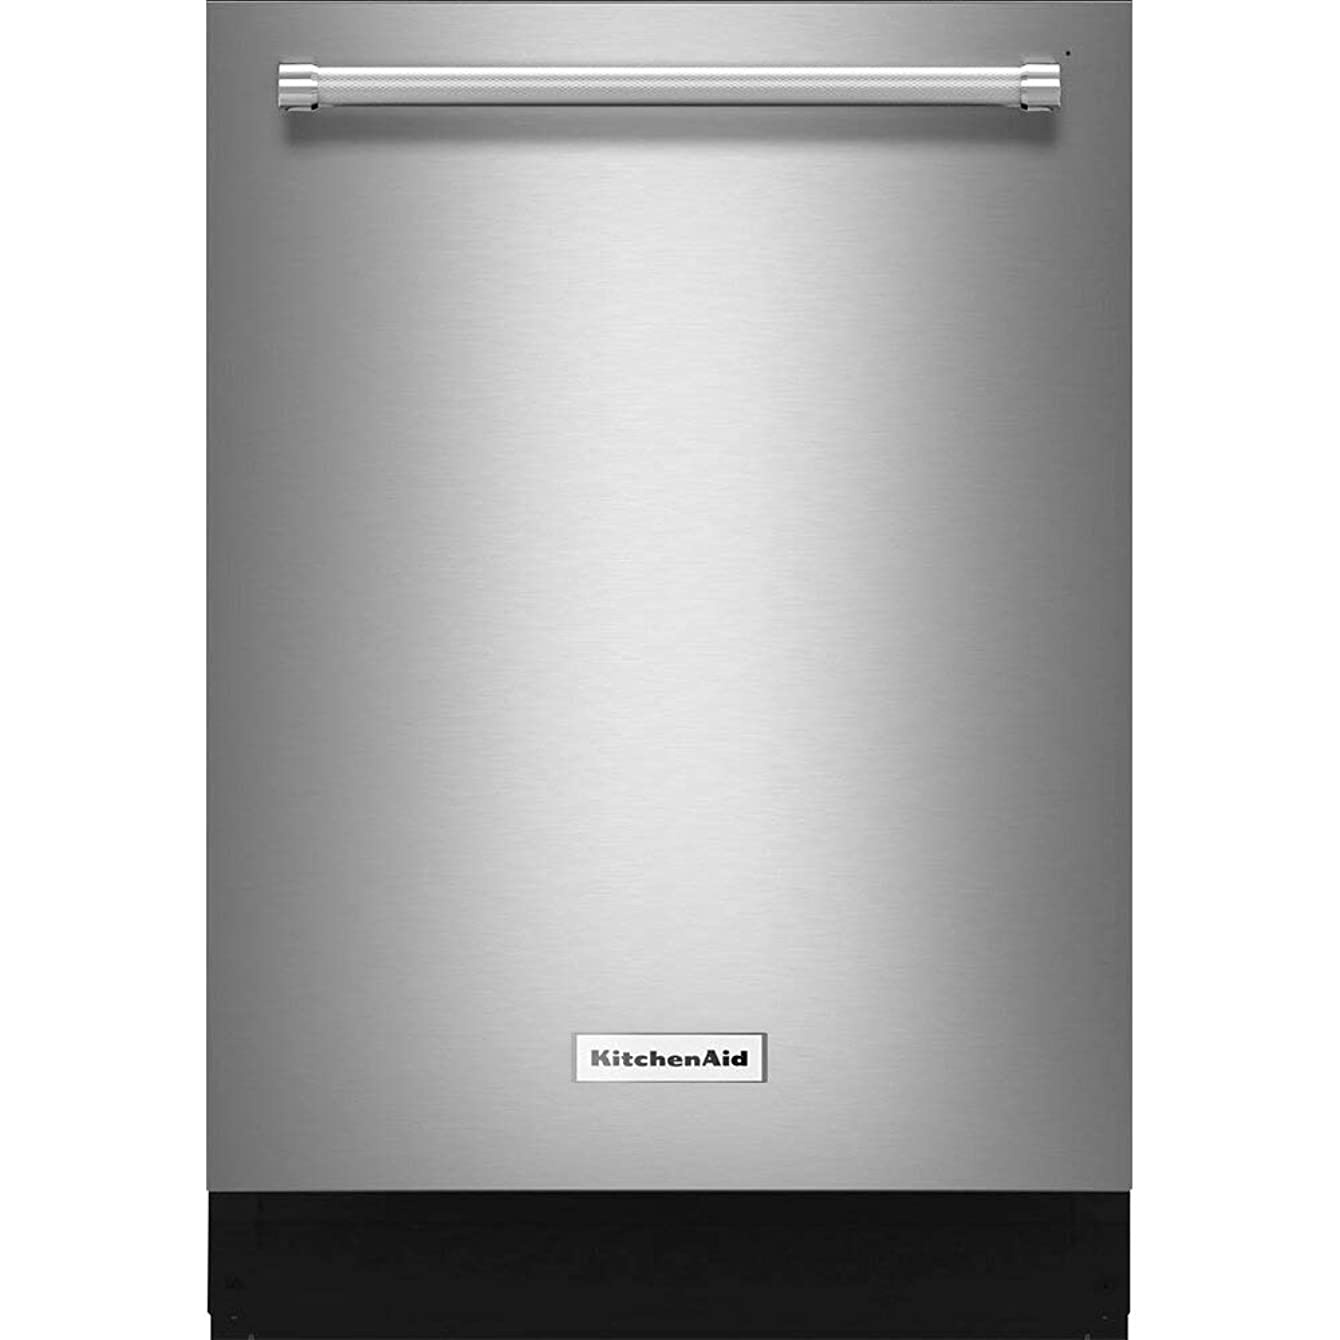 KitchenAid KDTE334GPS 39dB Stainless Built-in Dishwasher with Third Rack (Renewed)